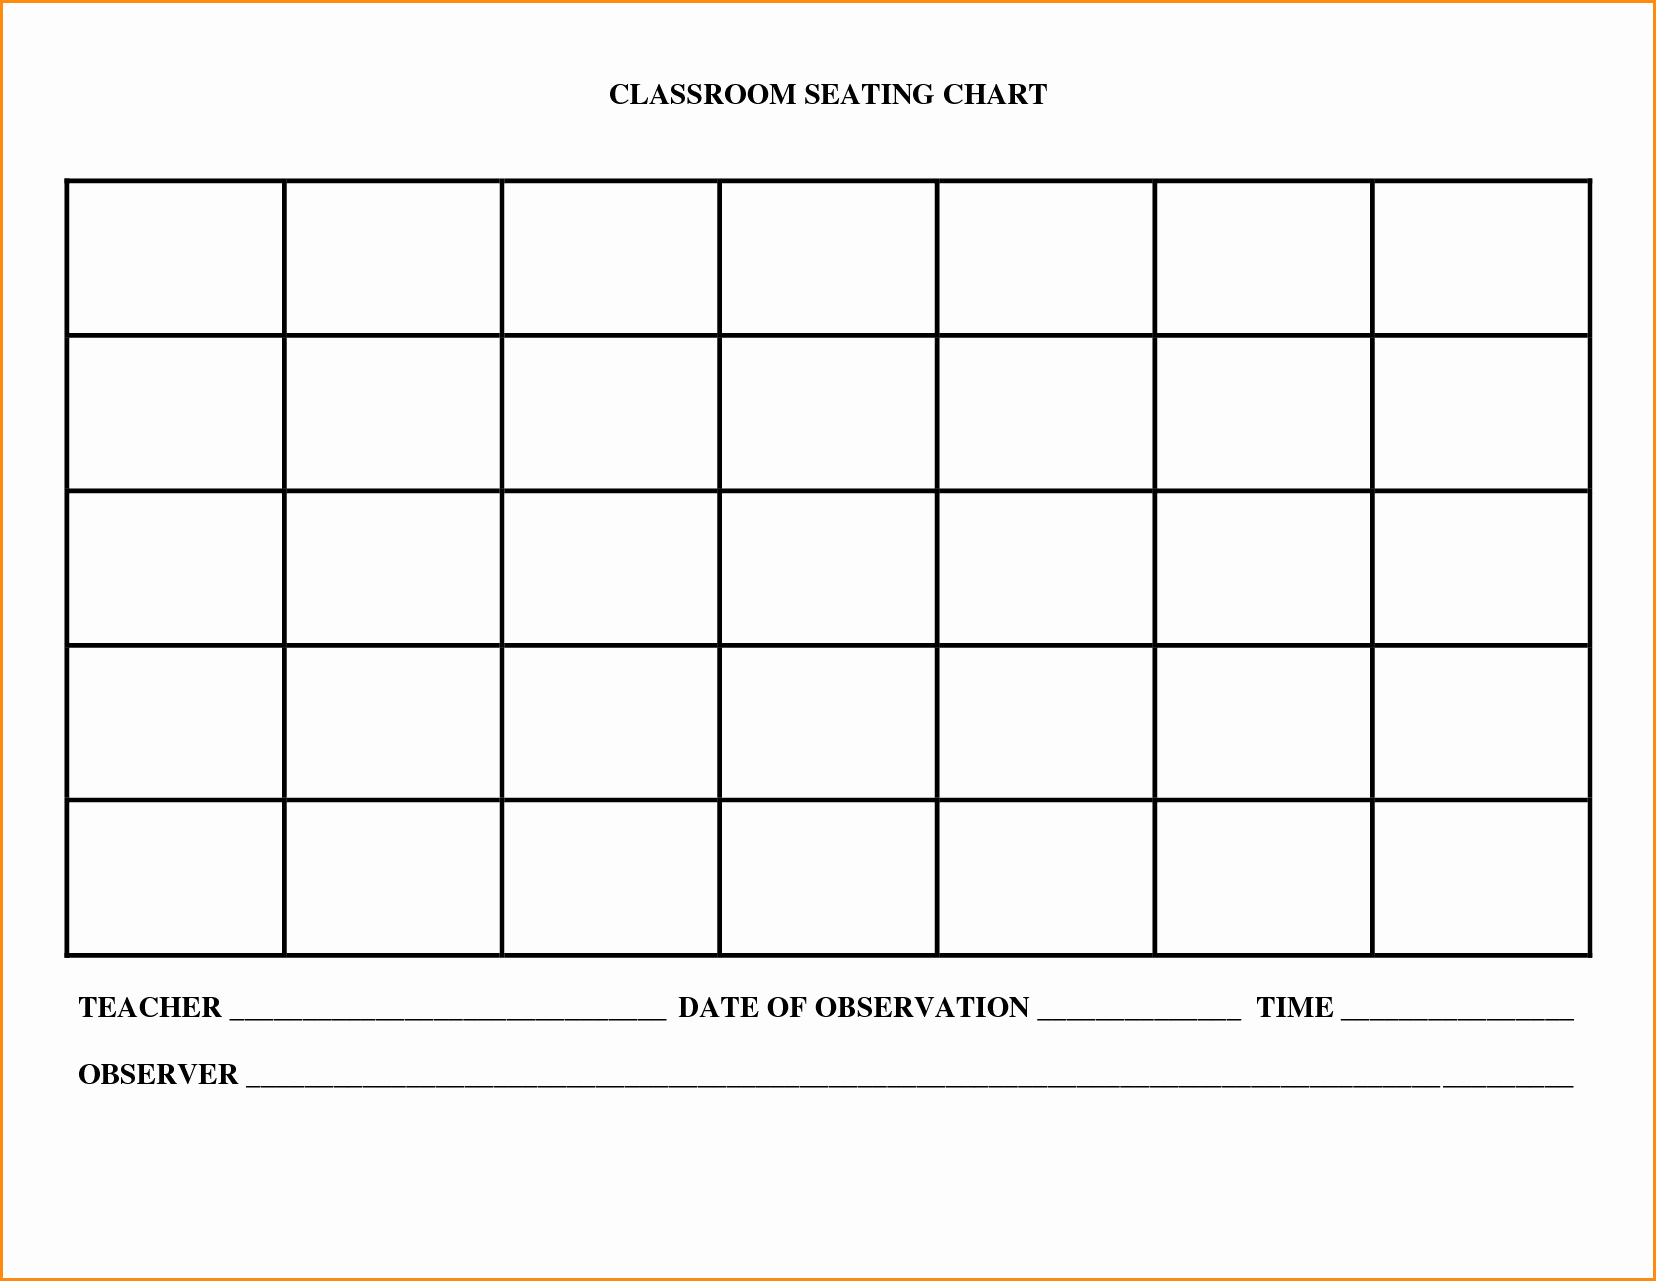 Seating Charts Templates for Classrooms Fresh Church Seating Plan Template